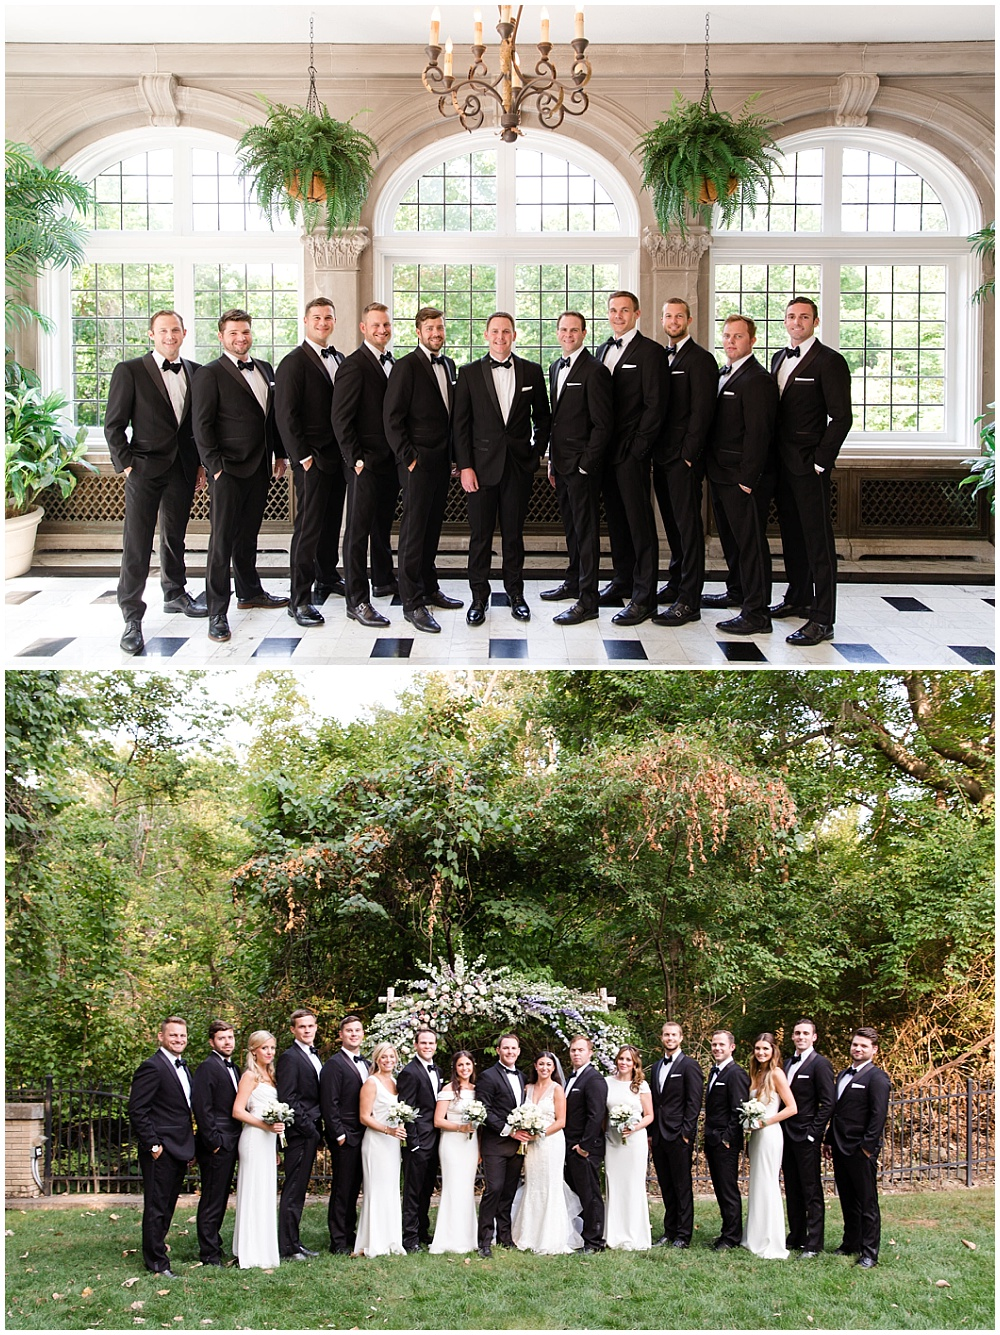 groomsmen; black tuxes; bridal party portraits; white bridesmaid dresses | Outdoor Terrace Wedding, Laurel Hall - Danielle Harris Photography; Jessica Dum Wedding Coordination